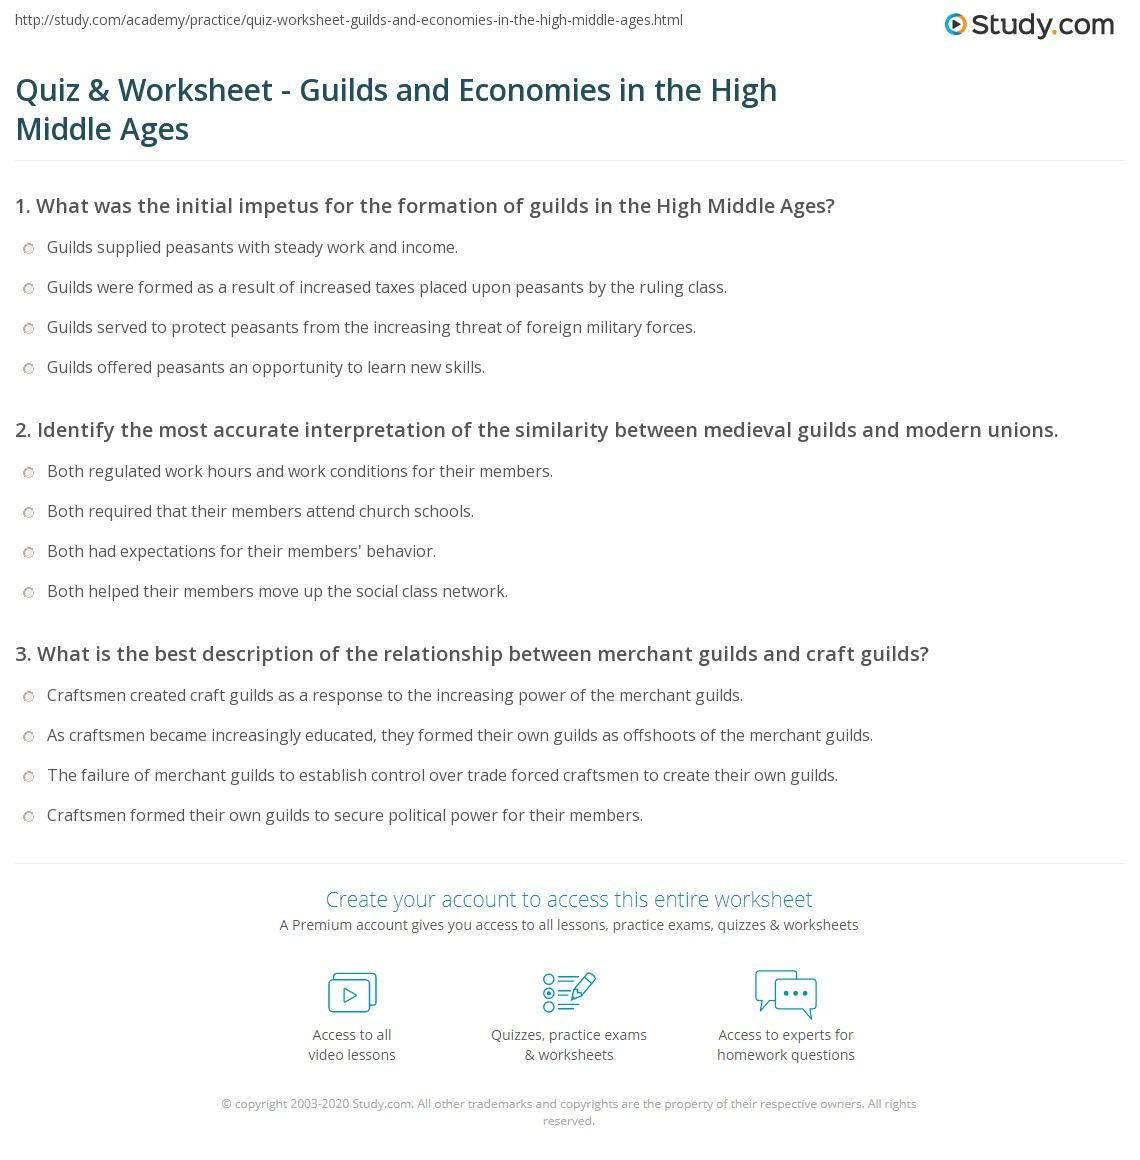 Quiz & Worksheet - Guilds and Economies in the High Middle Ages ...